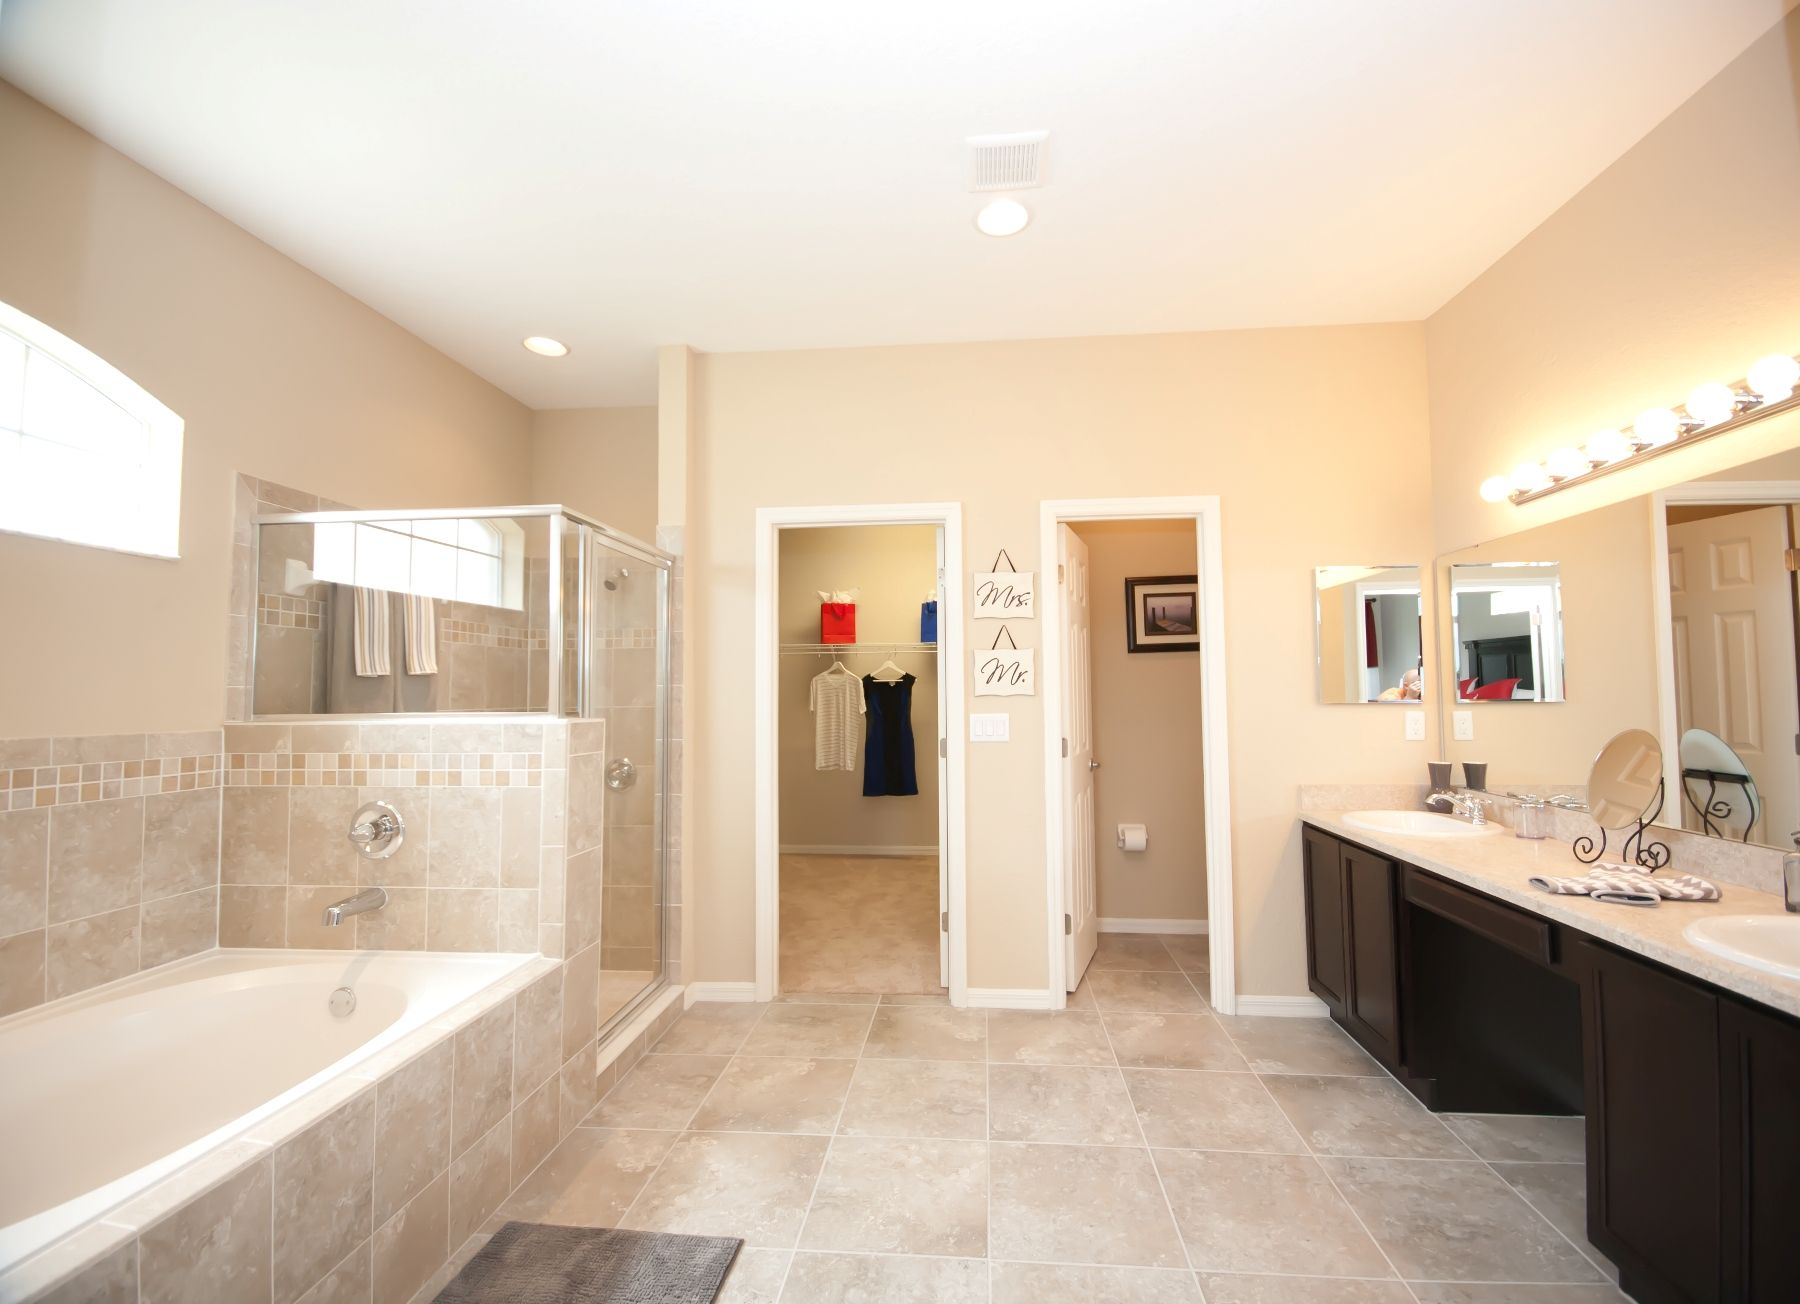 Model Home Bathroom Great Lighting Open Space And Warm Neutral Colors Make This